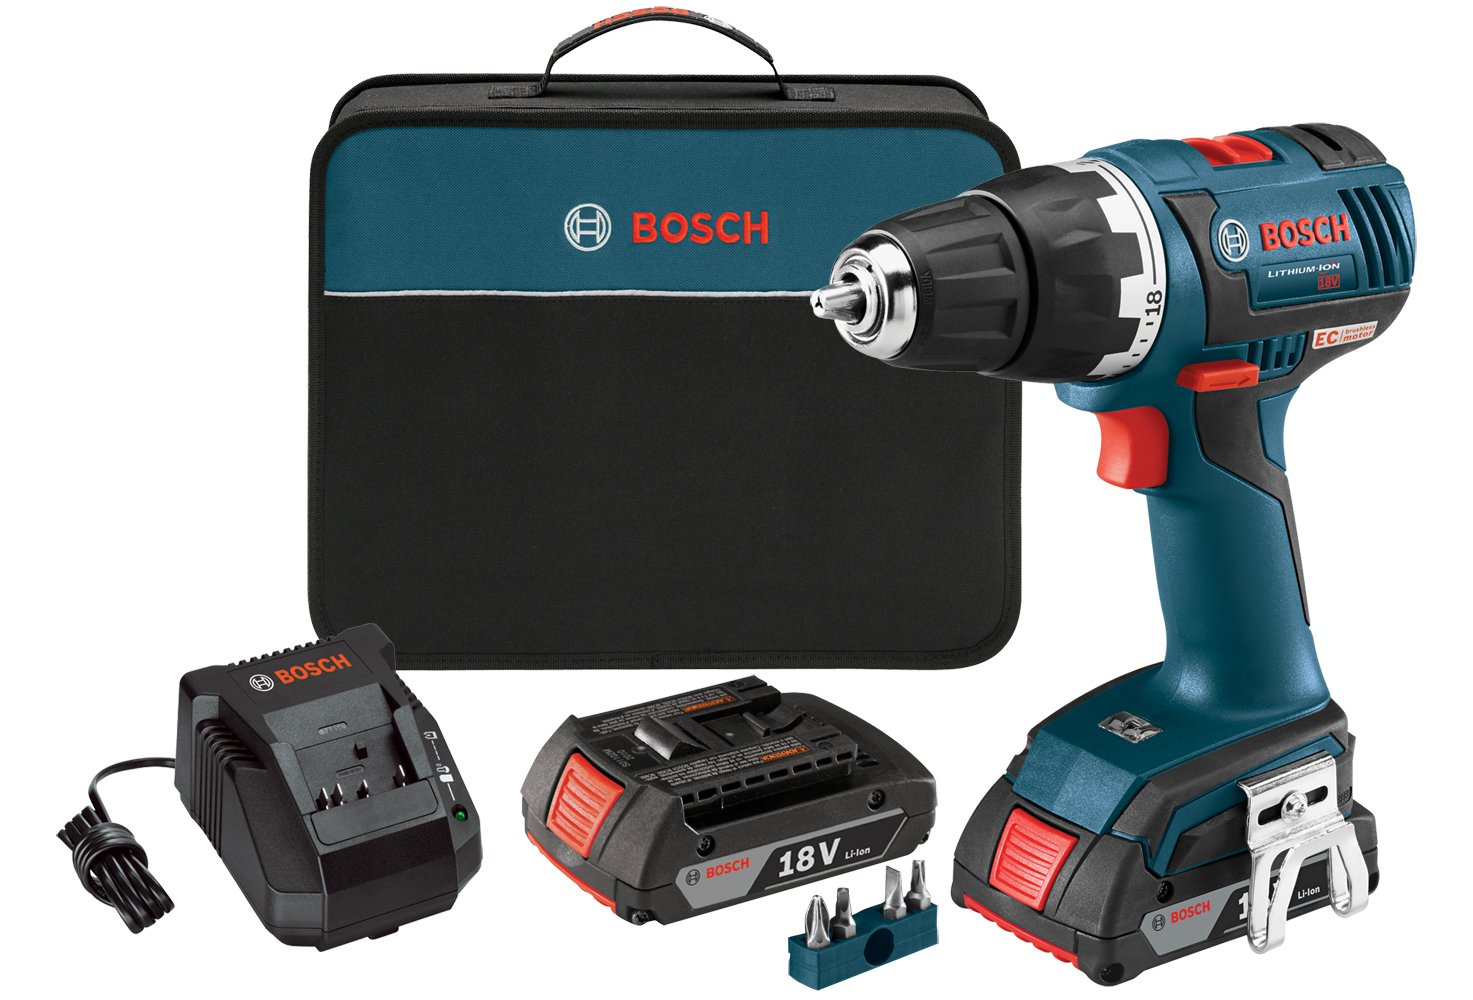 Bosch DDS182 (A Cute and Compact Drill)